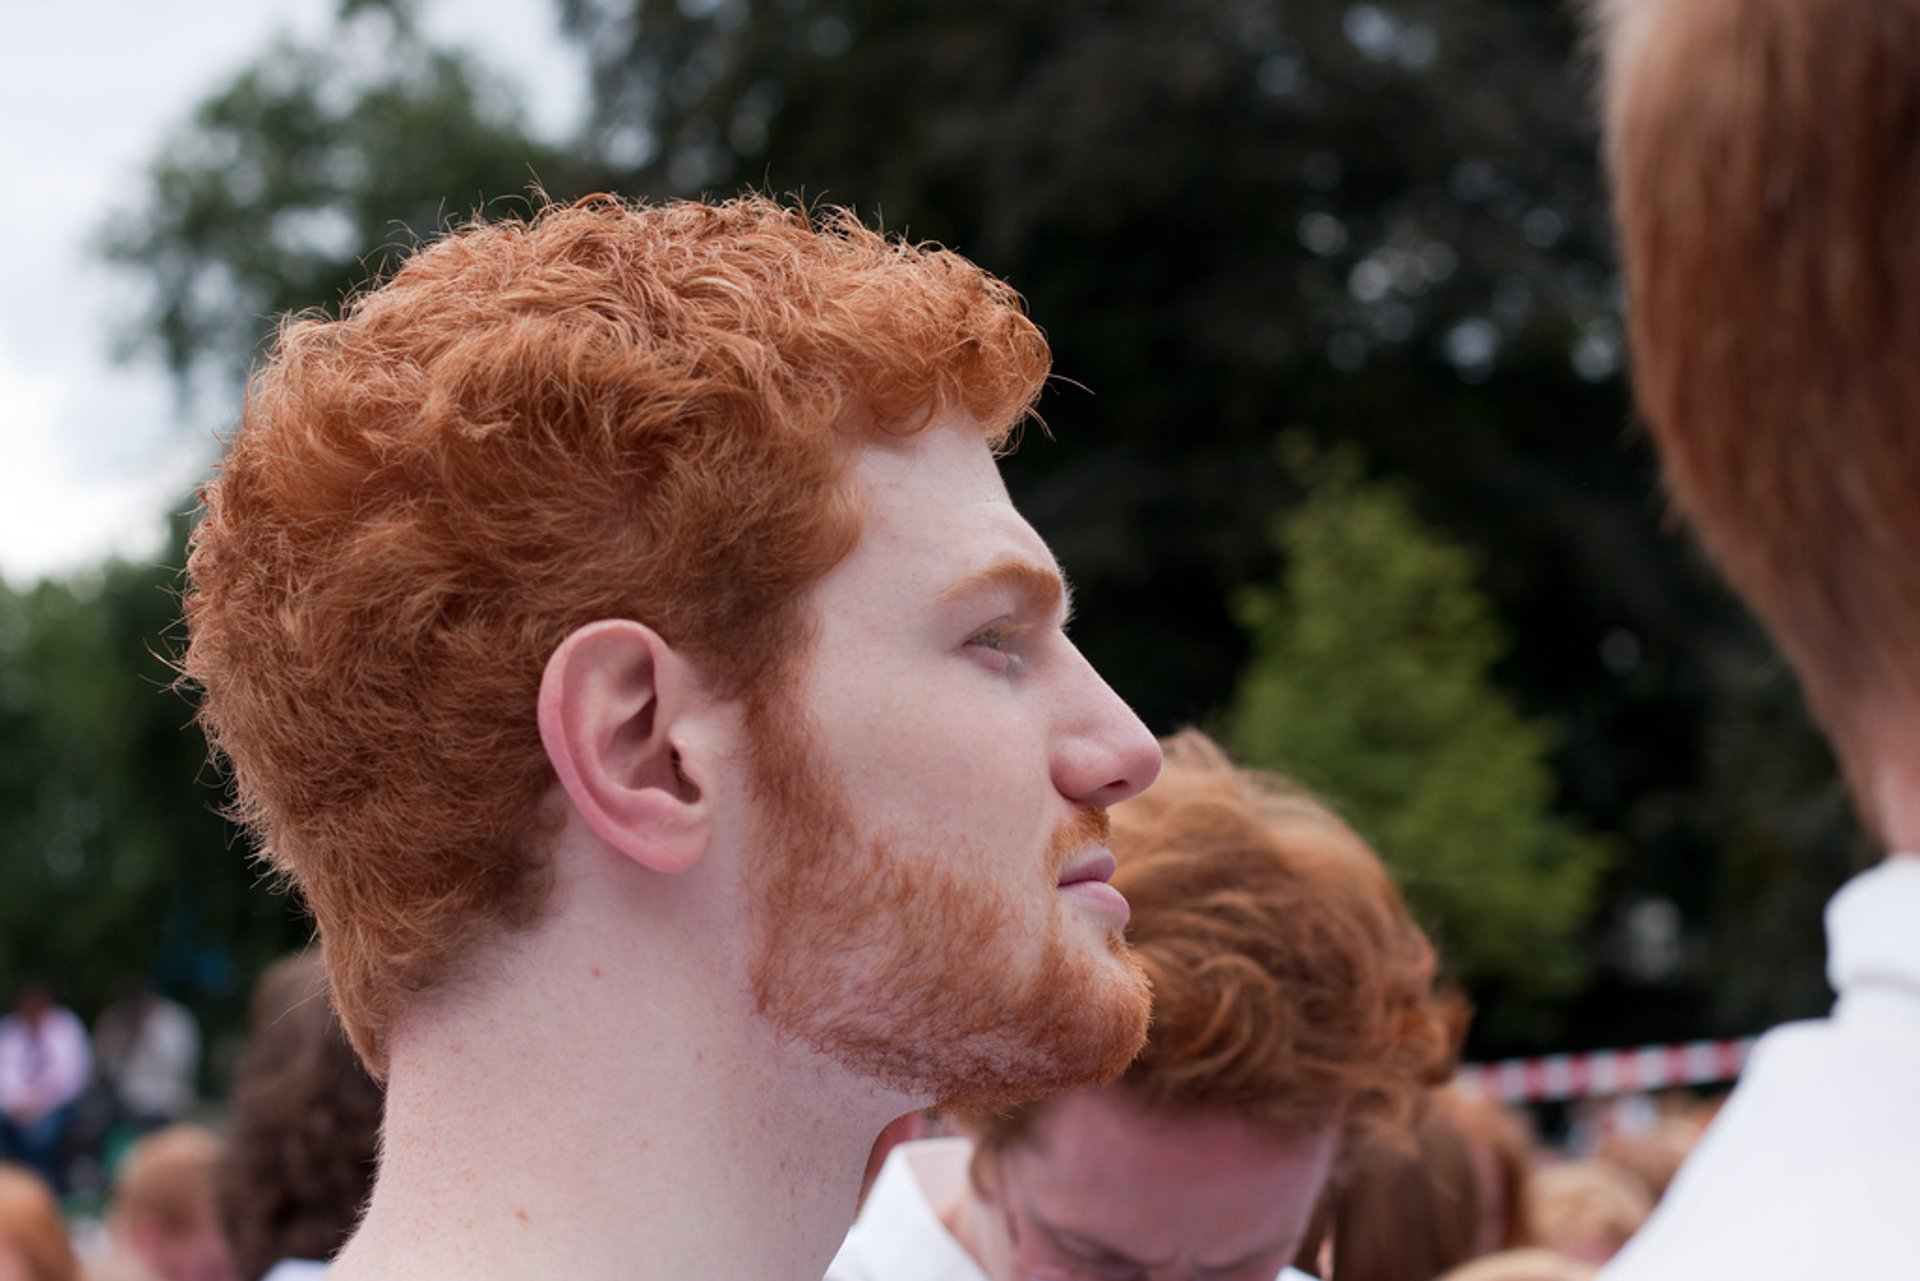 Best time to see Redhead Days (Roodharigendag) in The Netherlands 2020